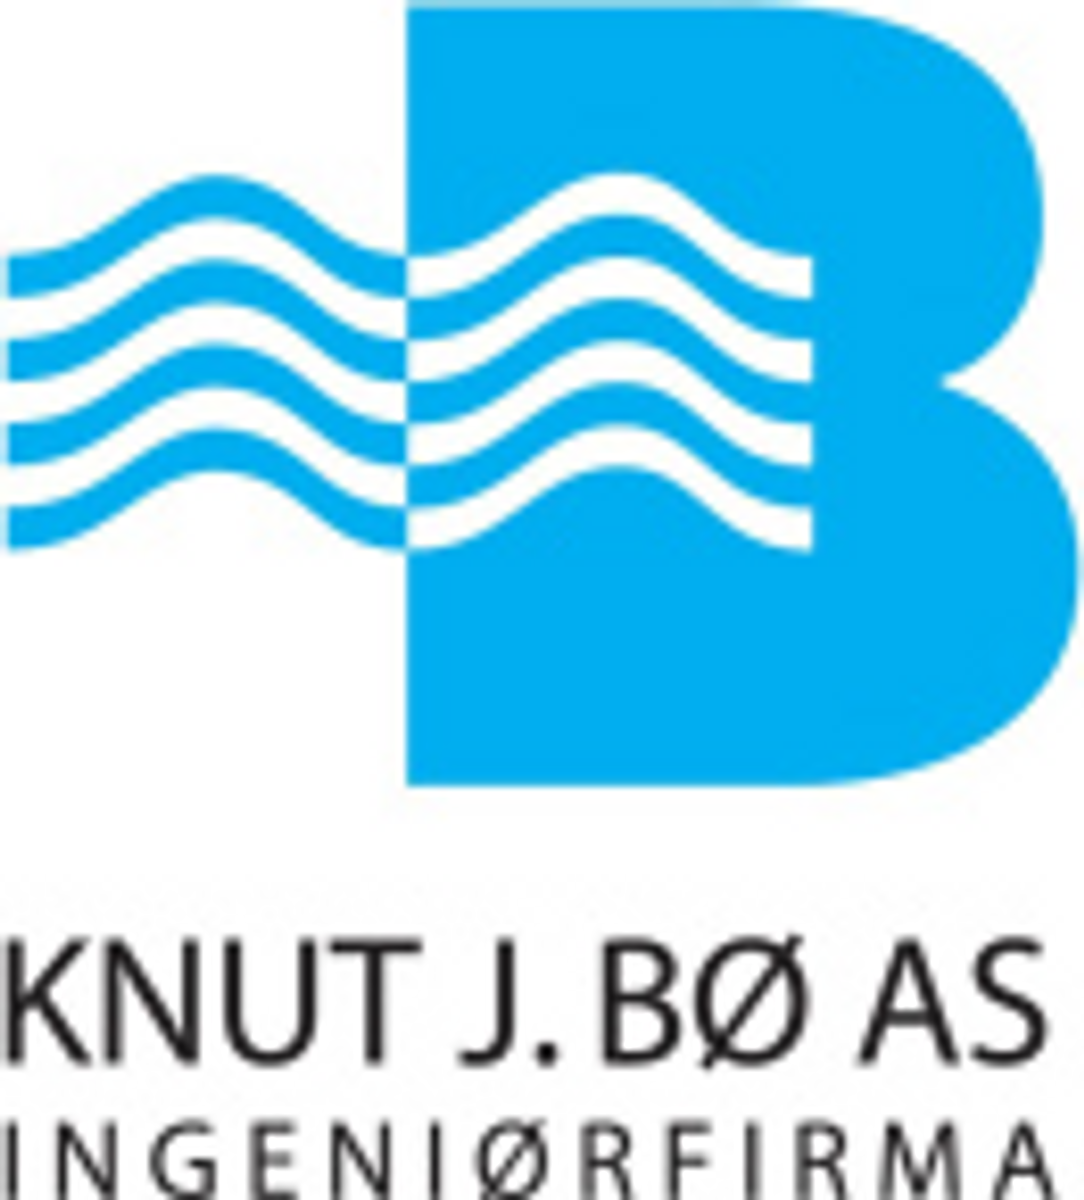 Logo, Ingeniørfirma Knut J. Bø AS